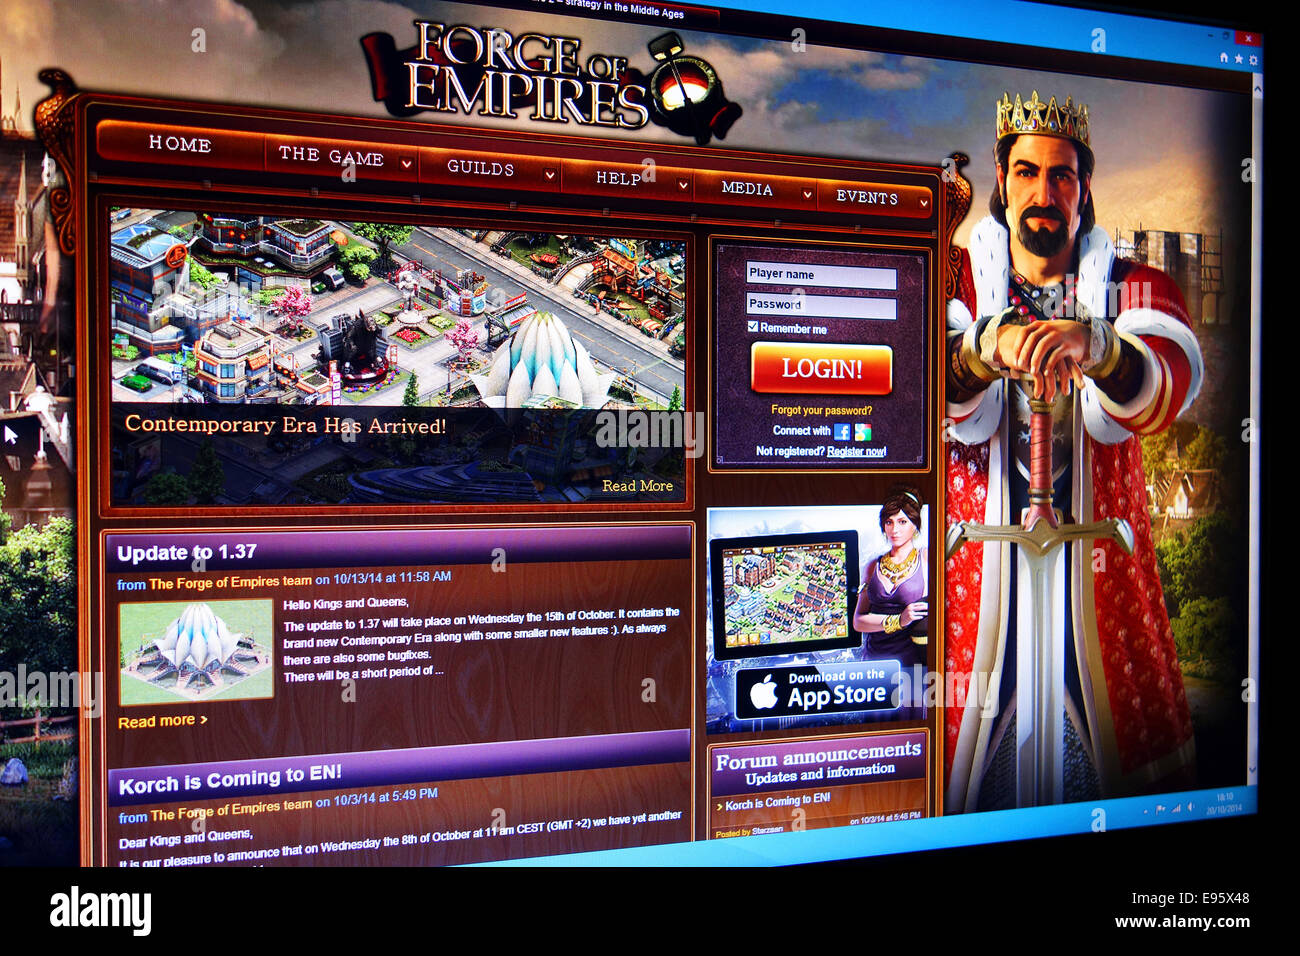 Forge of Empires web site Stock Photo: 74503640 - Alamy